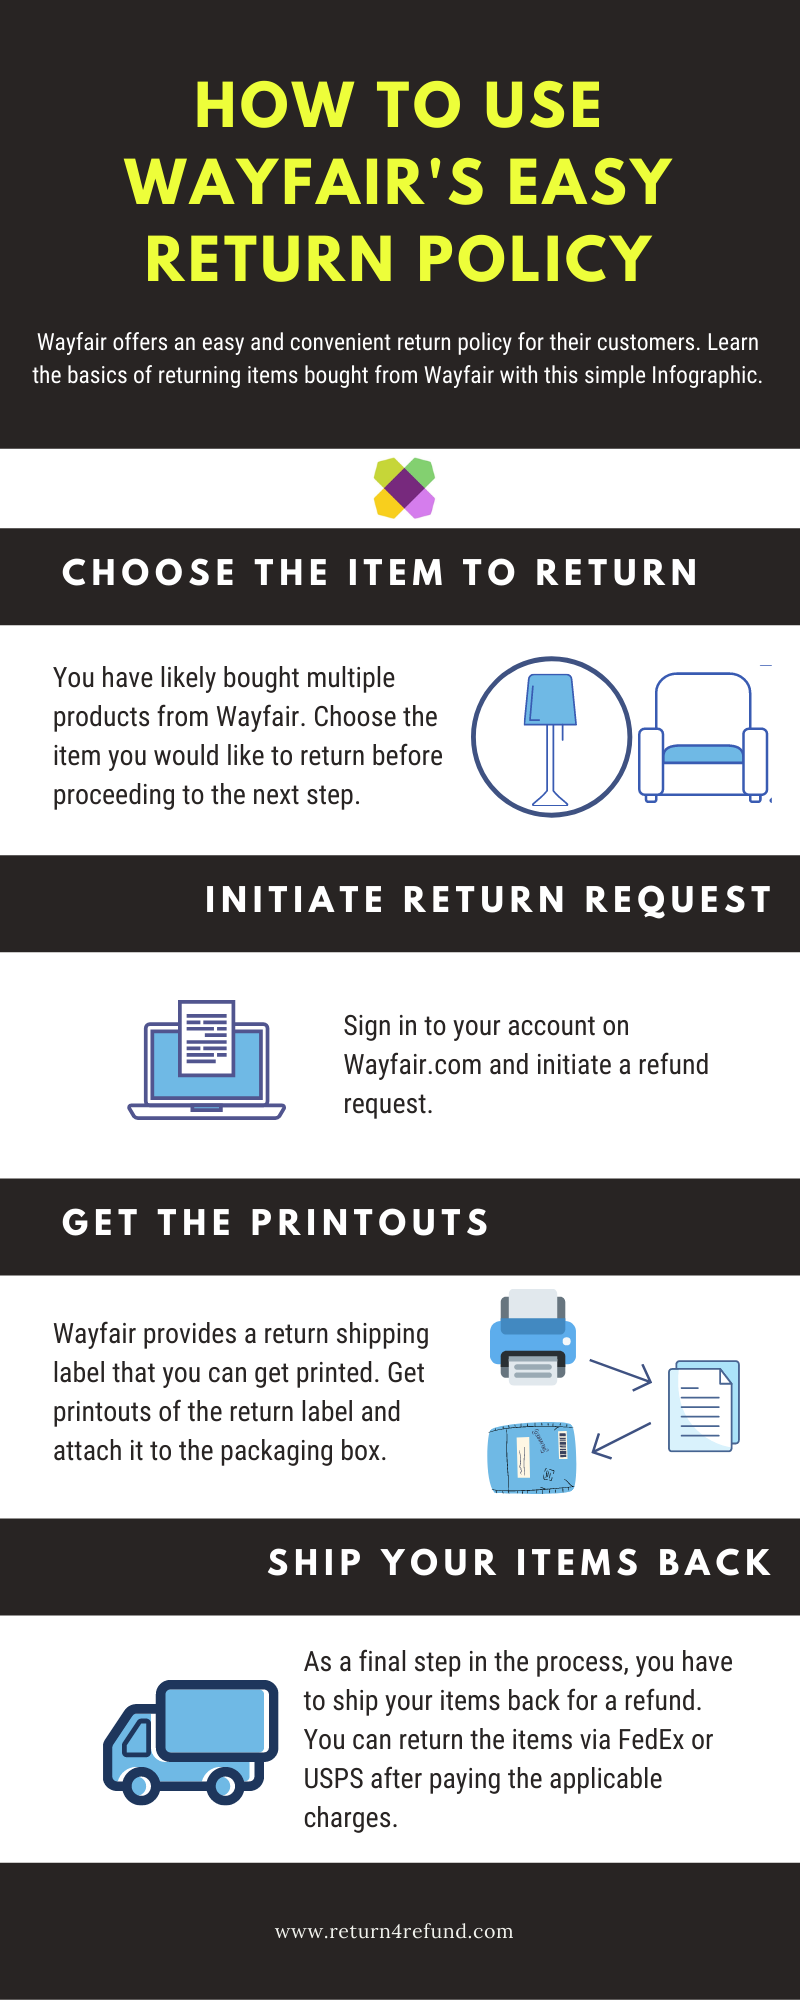 Wayfair Return Policy infographic